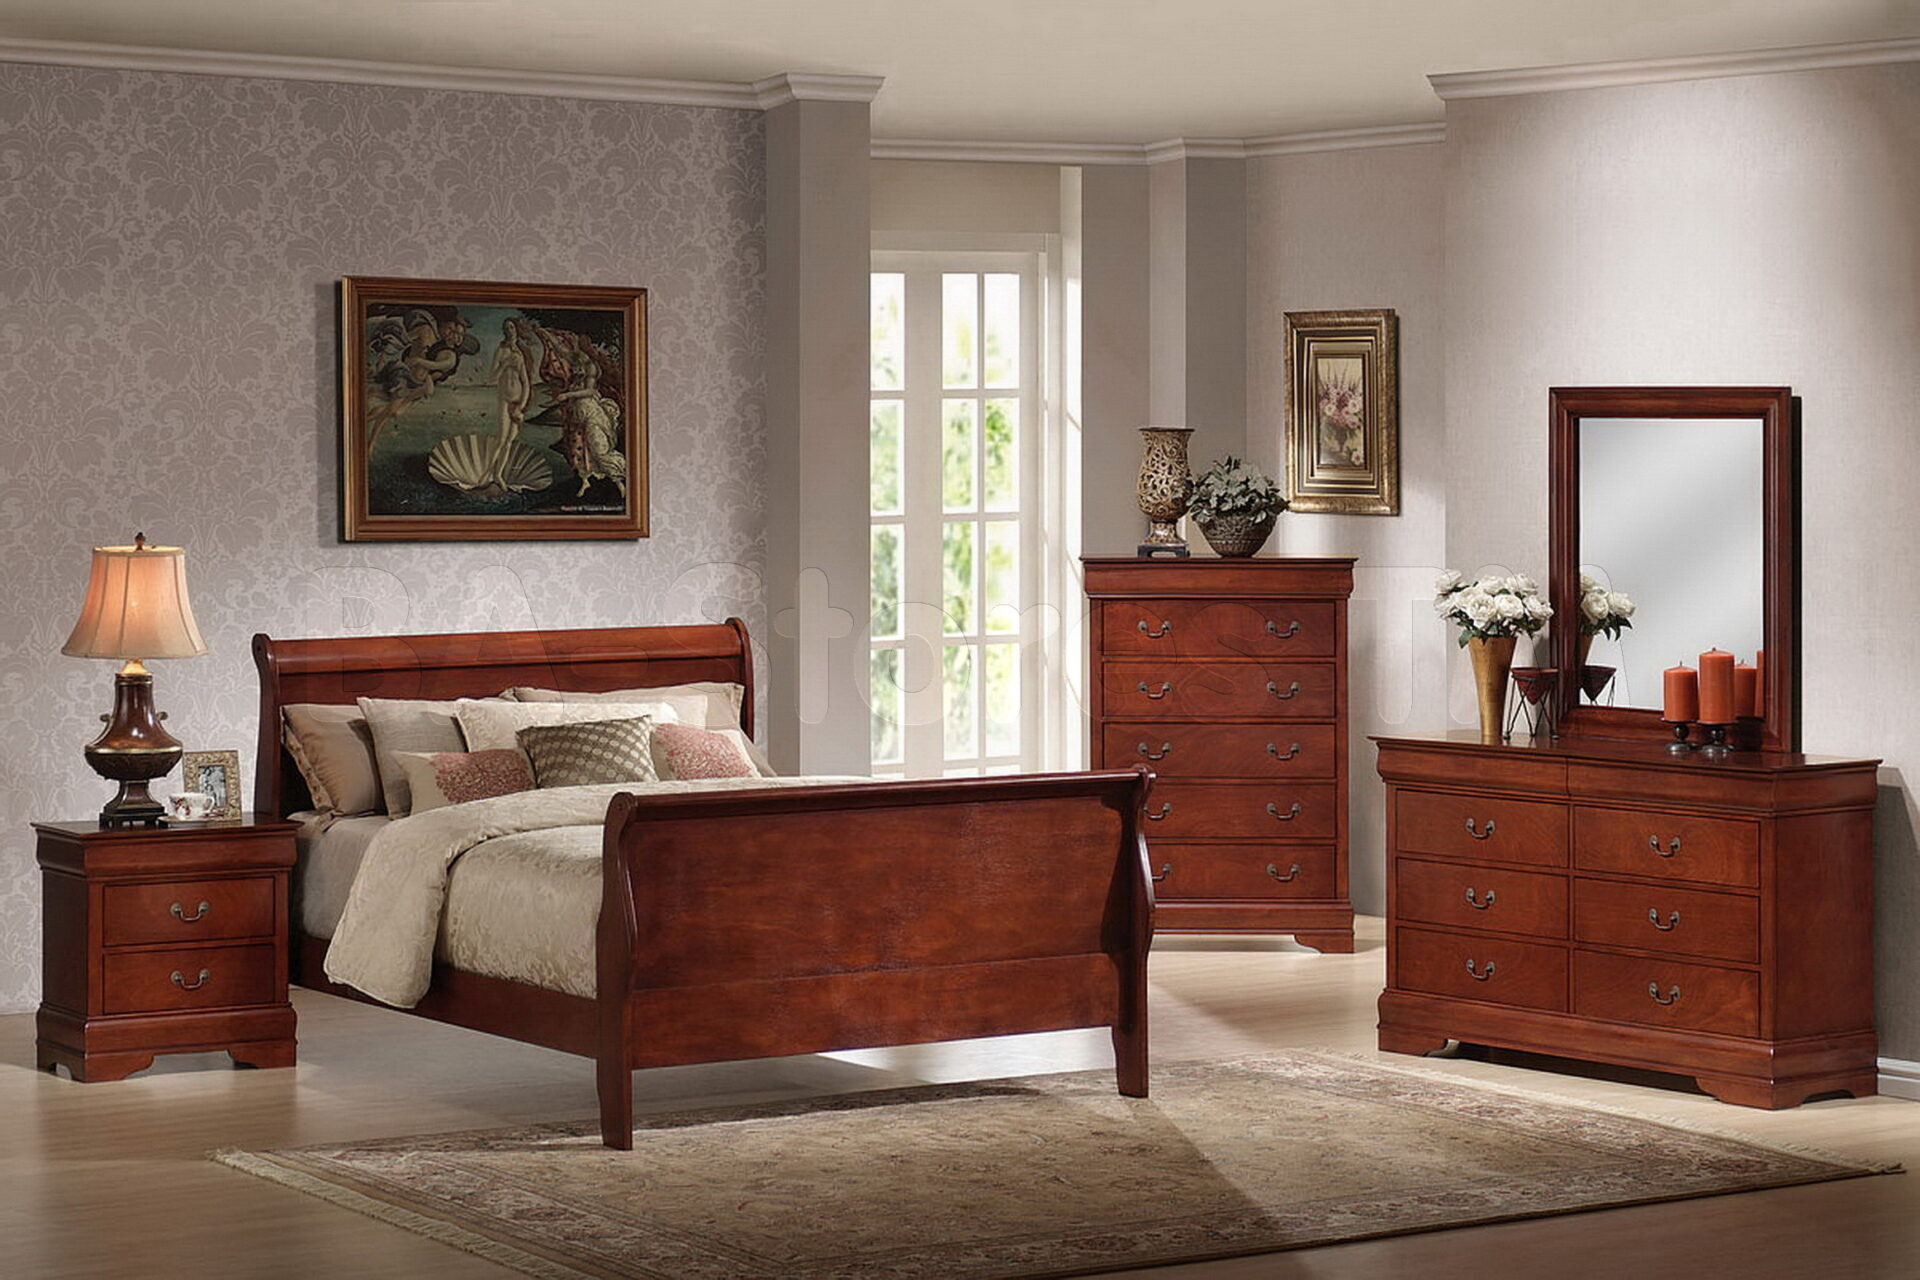 cherry wood furniture bedroom decor ideas On bedroom furniture decor ideas